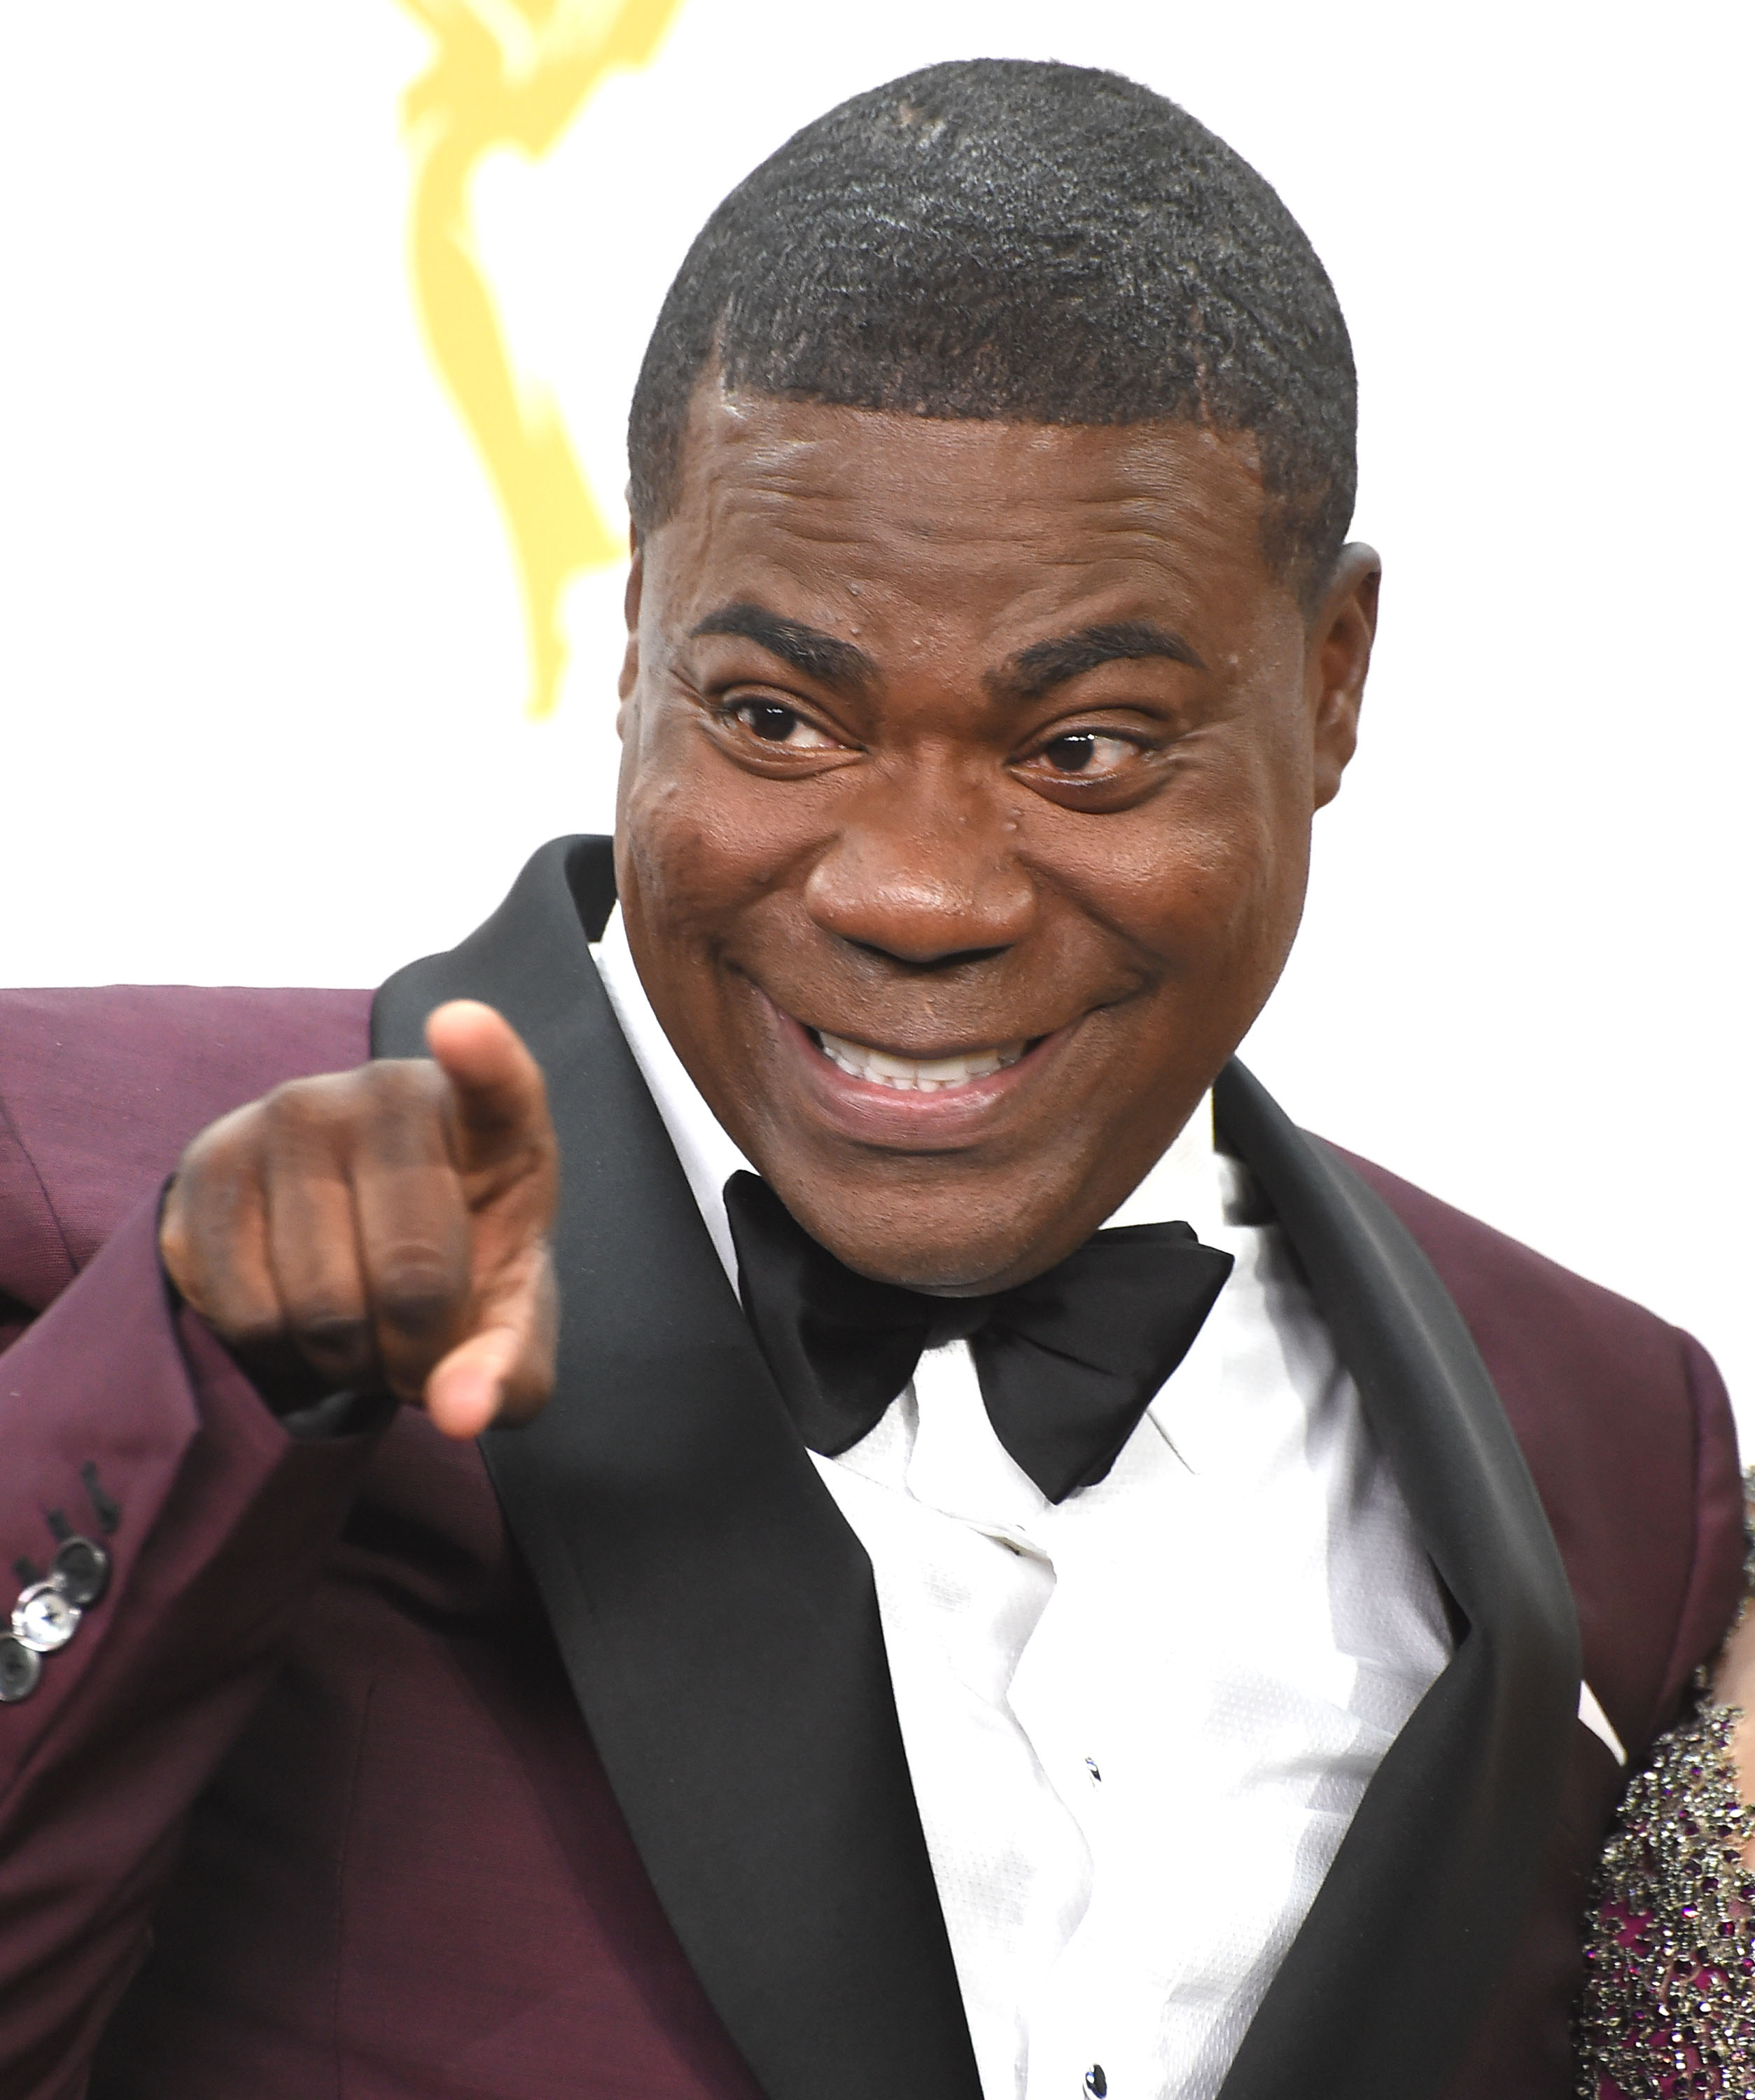 Tracy Morgan on Sept. 20, 2015 in Los Angeles.